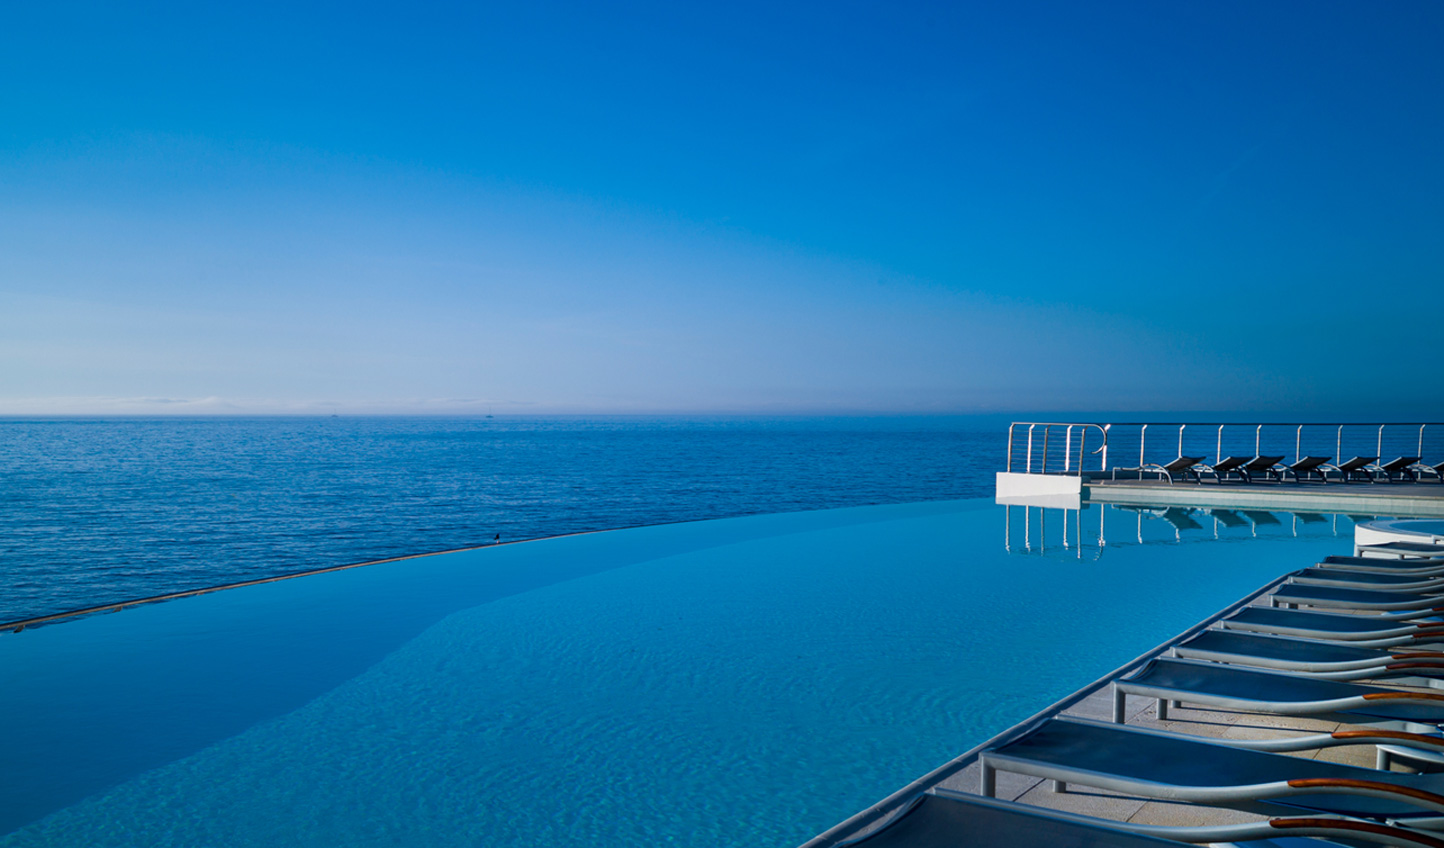 Gaze out over endless blues as you relax in the infinity pool